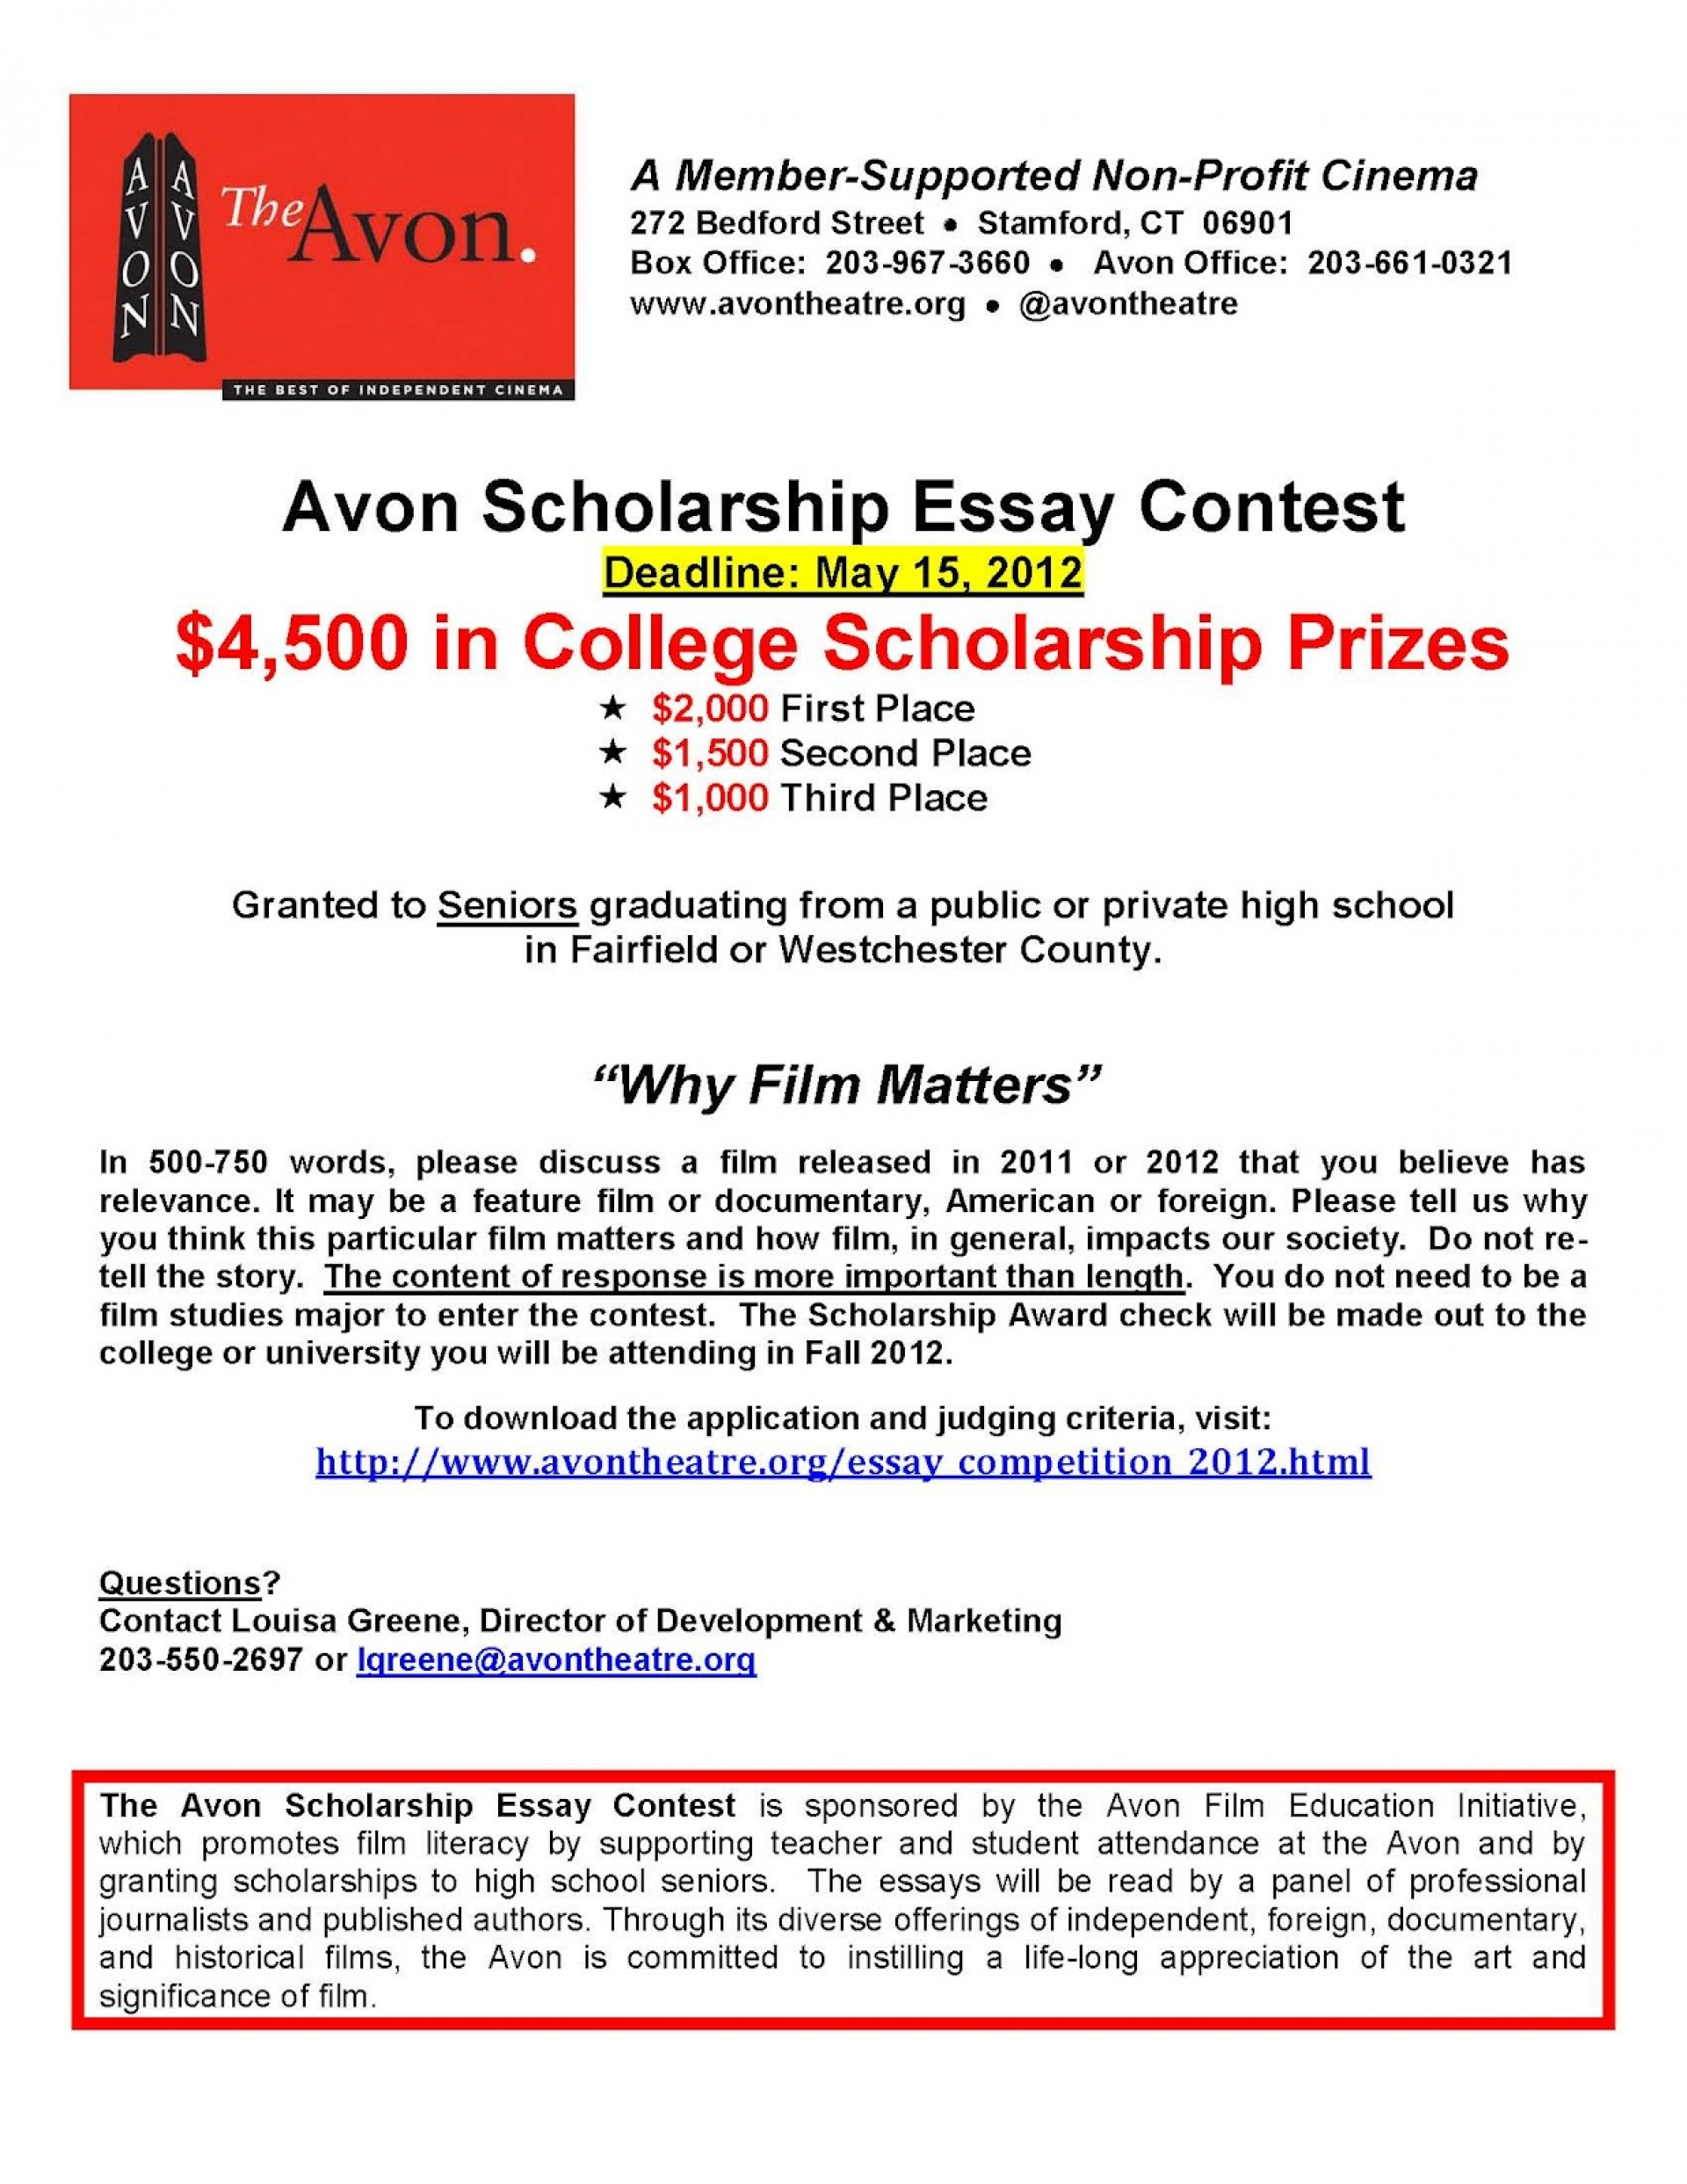 003 Non Essay Scholarships Example No College Scholarship Prowler Free For High School Seniors Avonscholarshipessaycontest2012 In Texas California Class Of Short Imposing 2019 Students 2017 1920